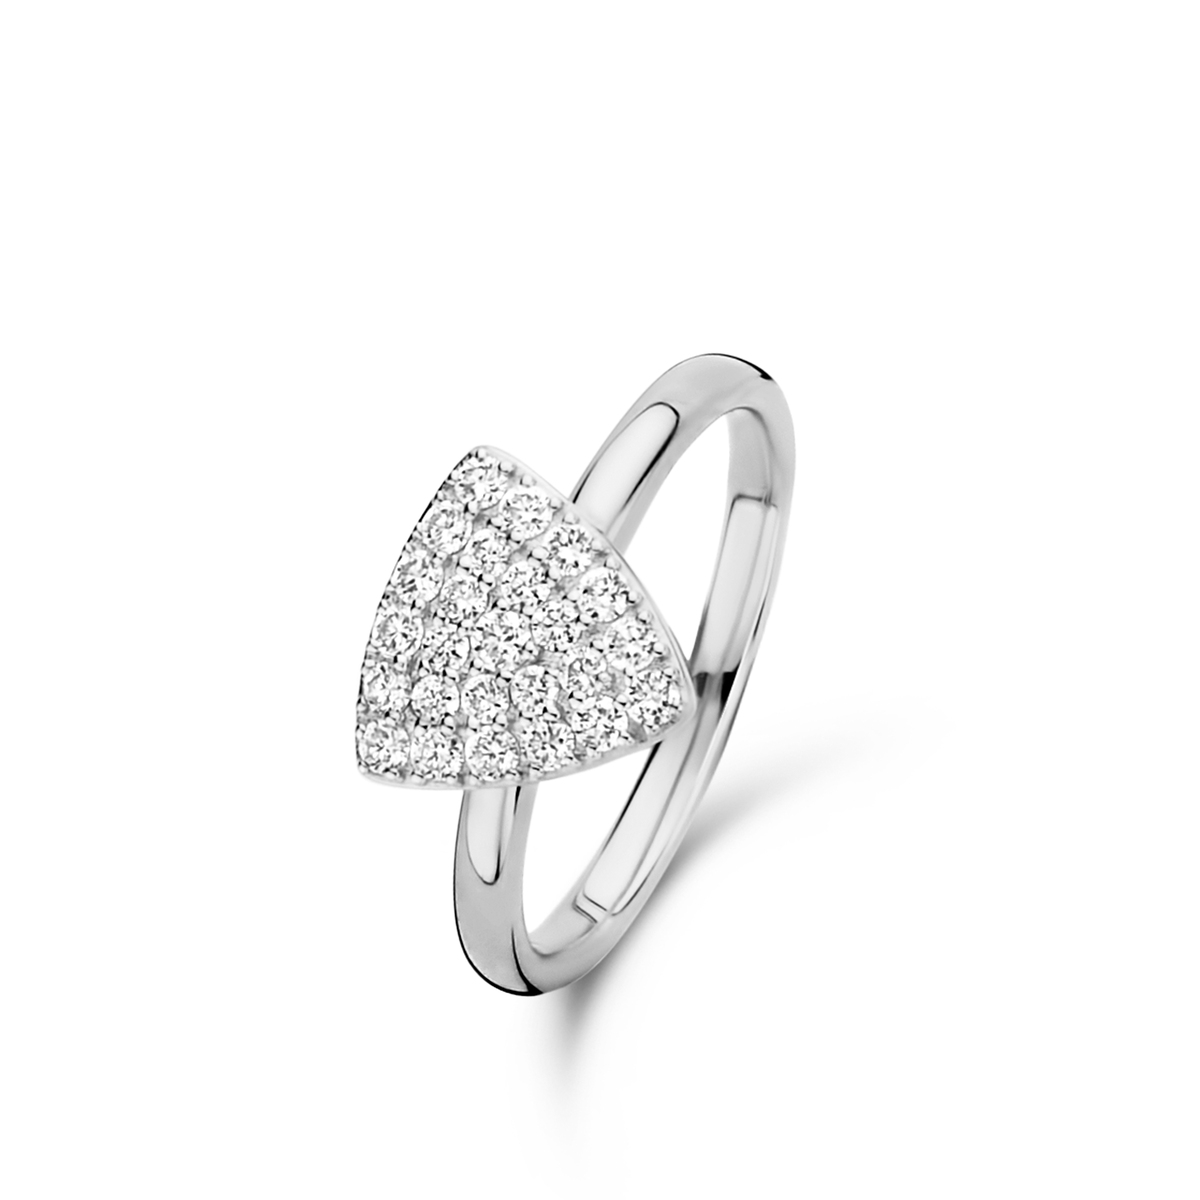 eolo ring in white gold